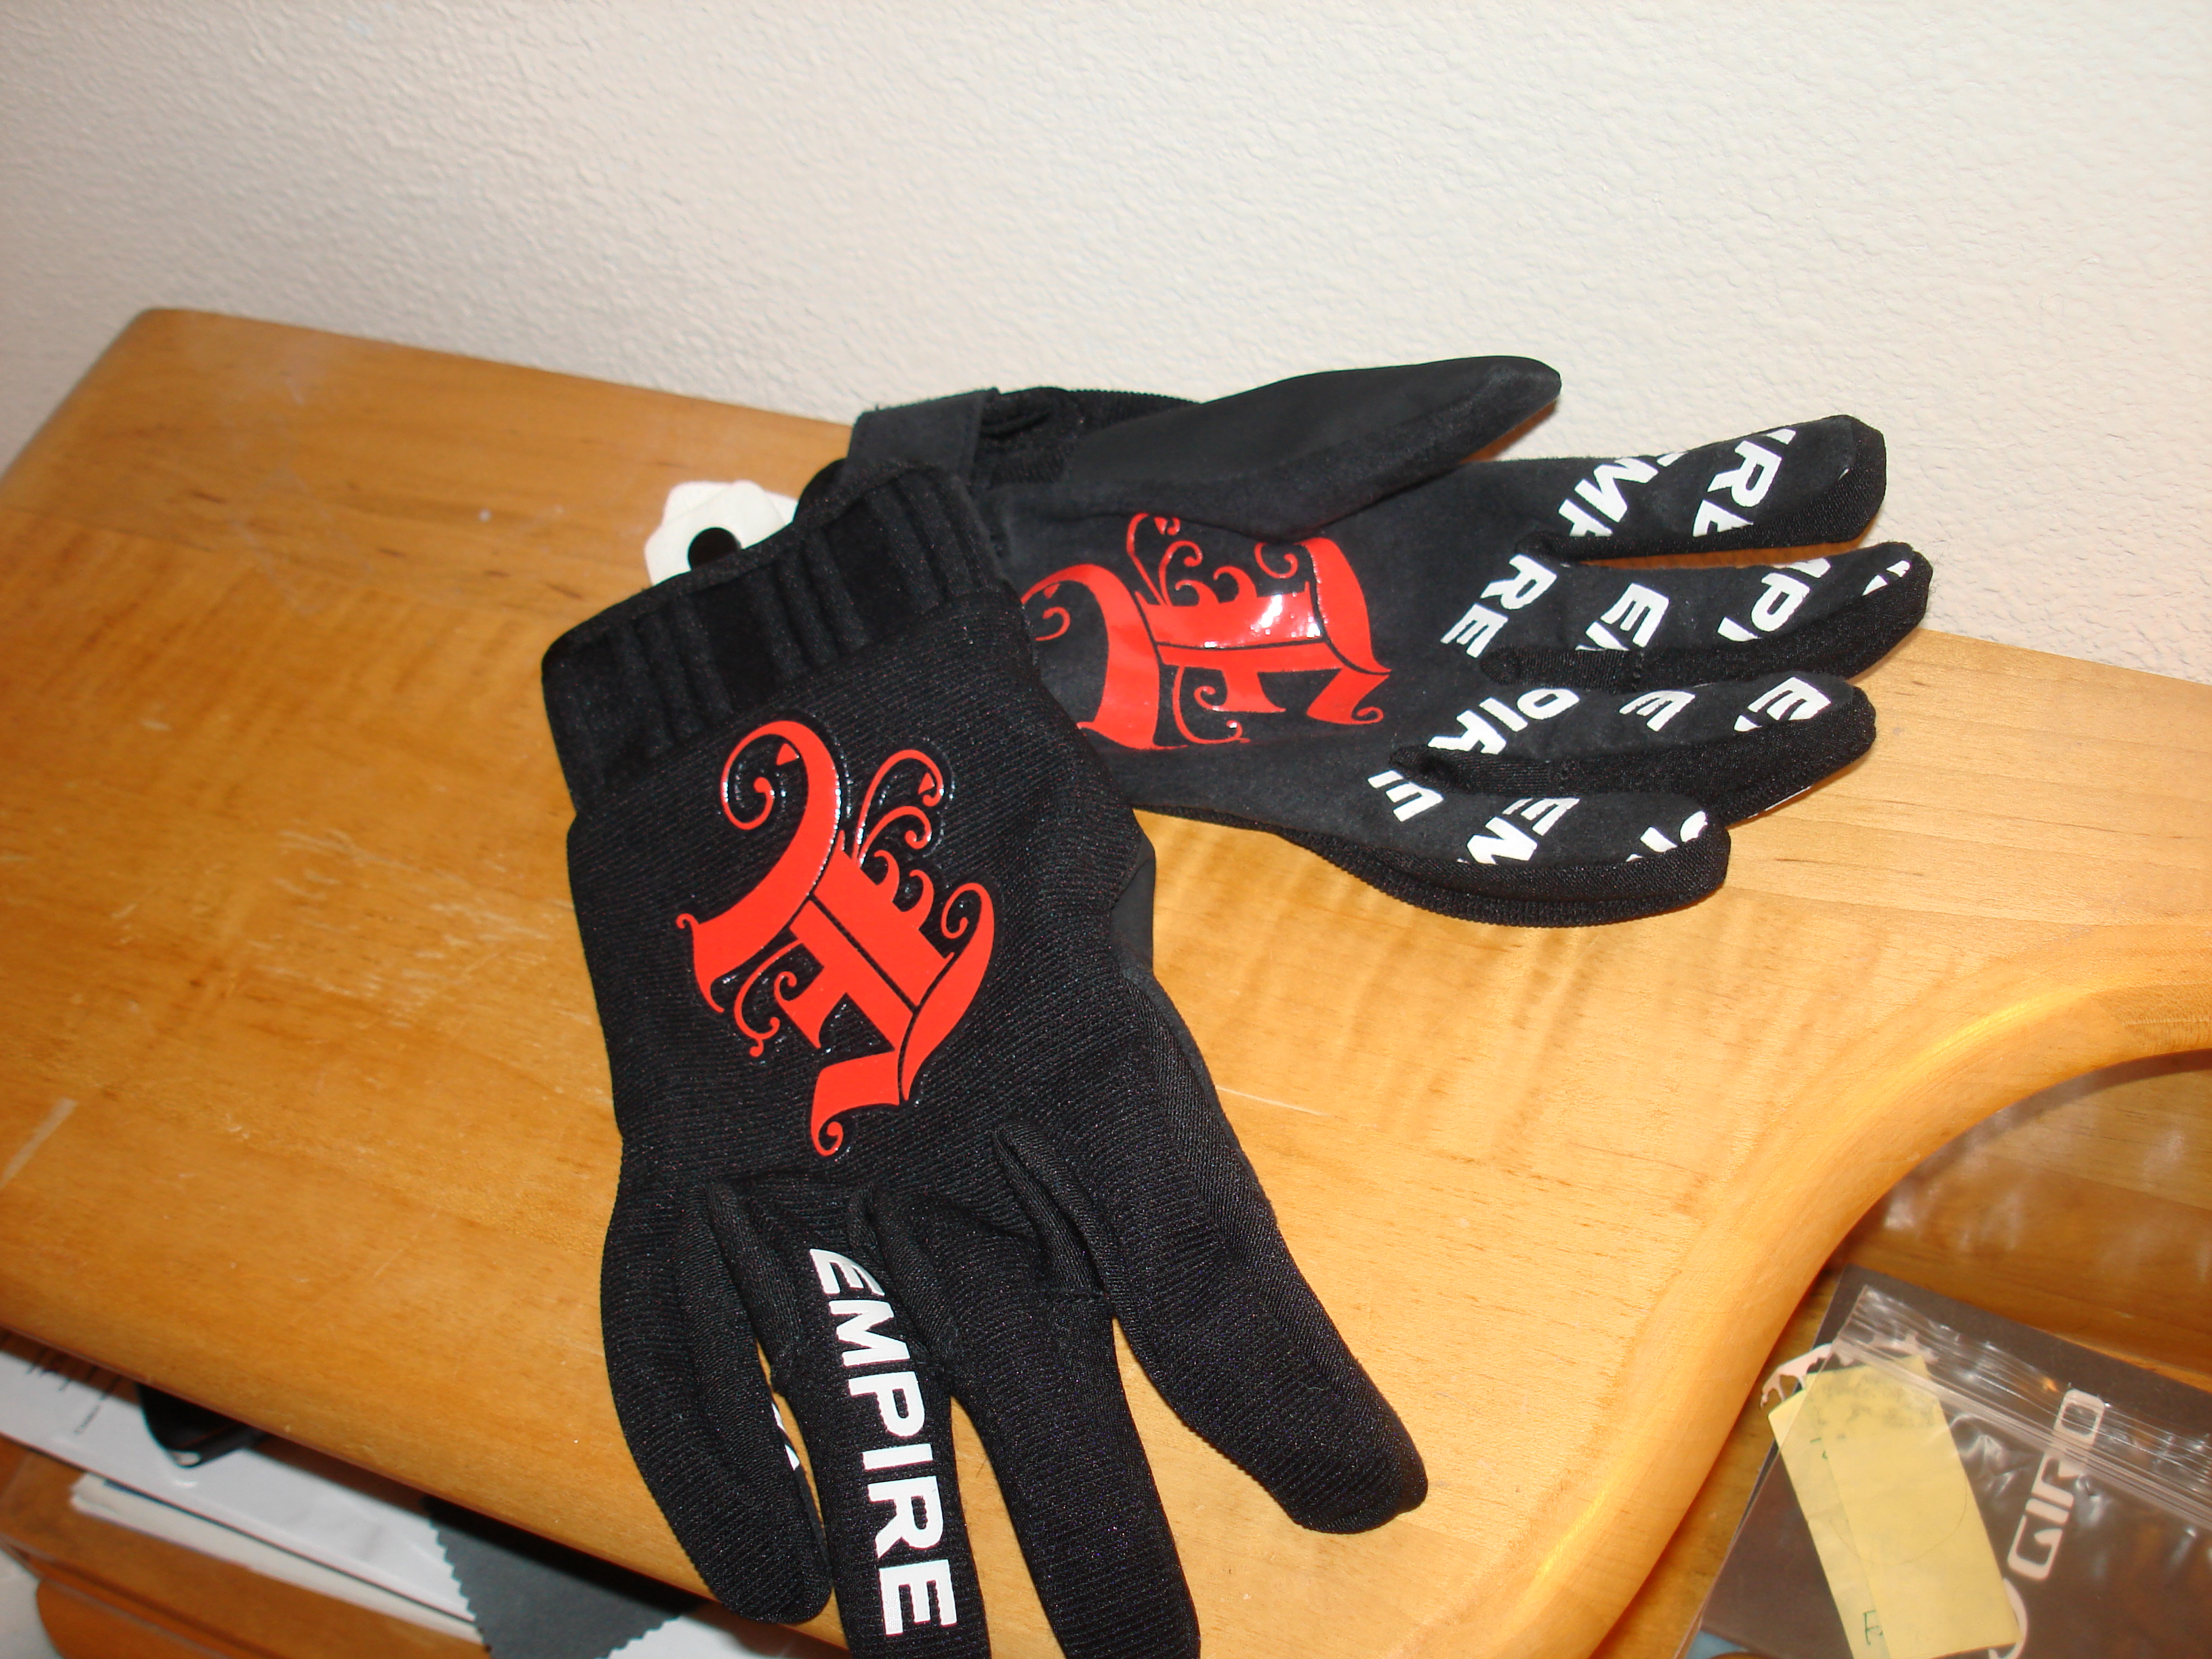 Empire Attire pipe glove= sicknasty